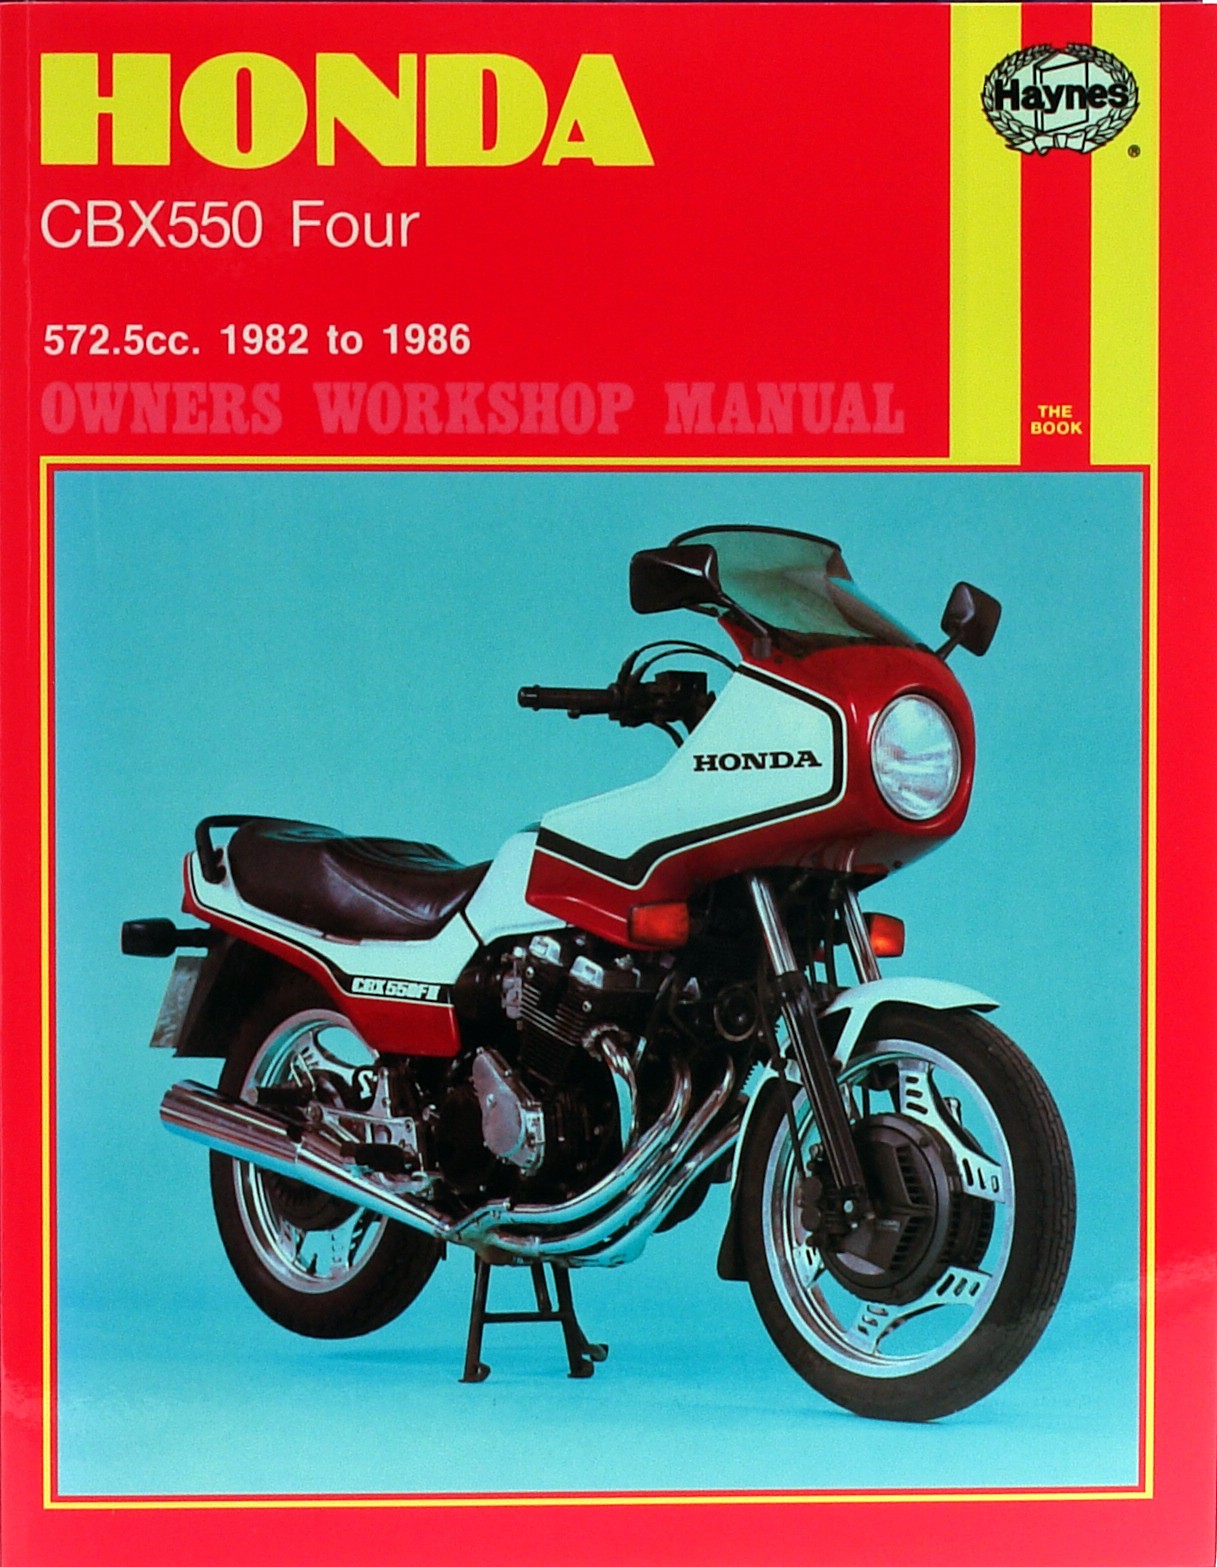 fits honda cbx 550 f europe 1982 1983 manuals haynes each ebay rh ebay co uk Honda CBX 500 2014 honda cbx550f parts manual